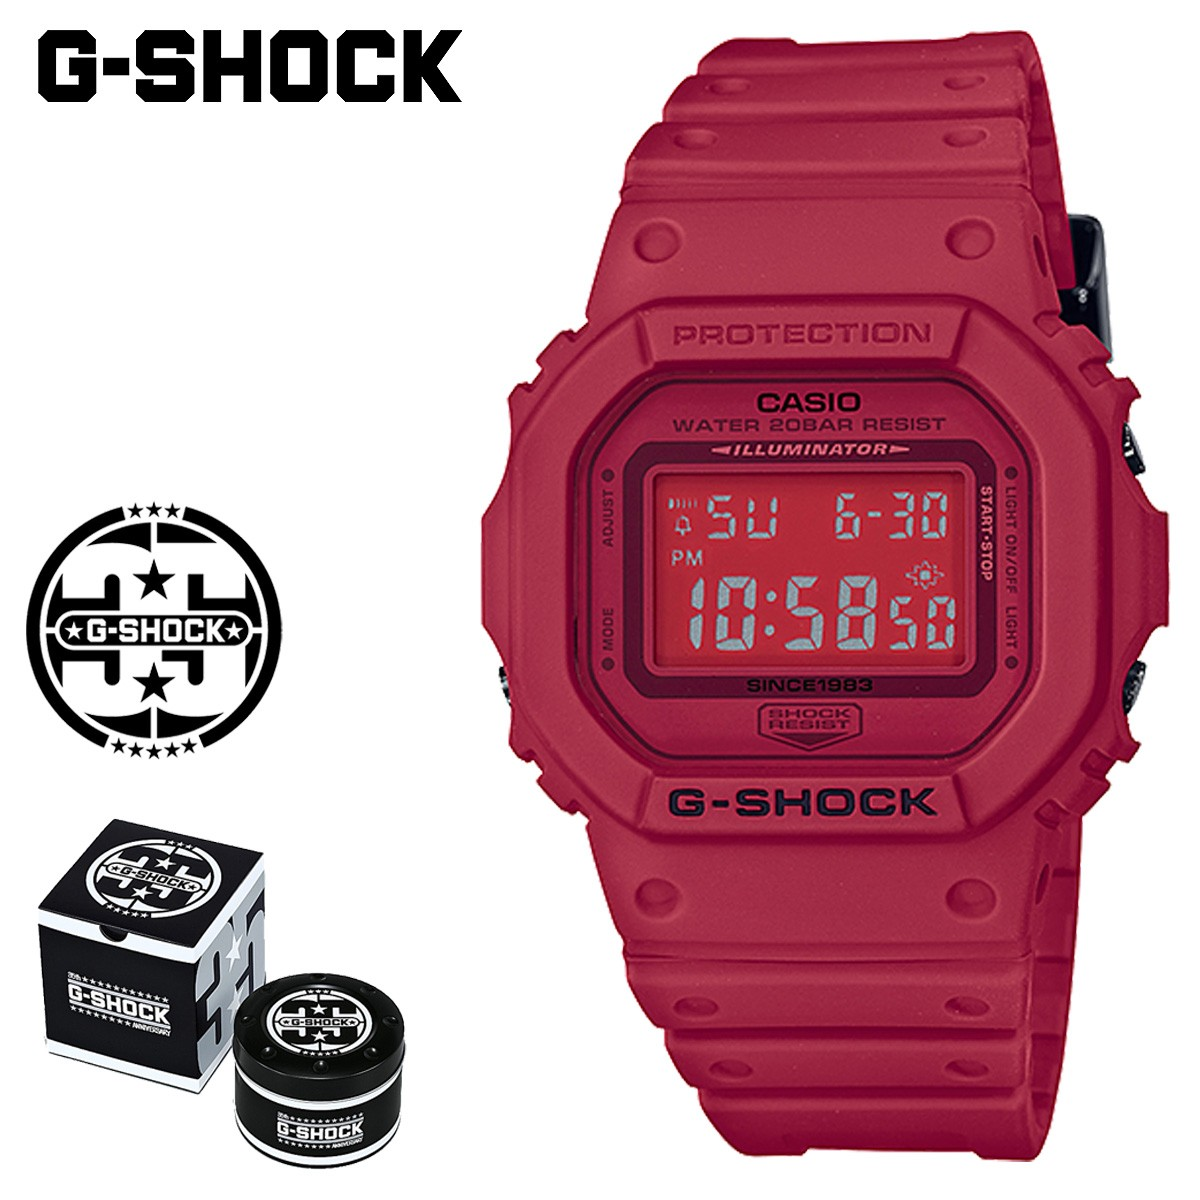 【SOLD OUT】 カシオ CASIO G-SHOCK 腕時計 DW-5635C-4JR RED OUT 35周年 ジーショック Gショック G-ショック レッド メンズ レディース [1/19 新入荷]